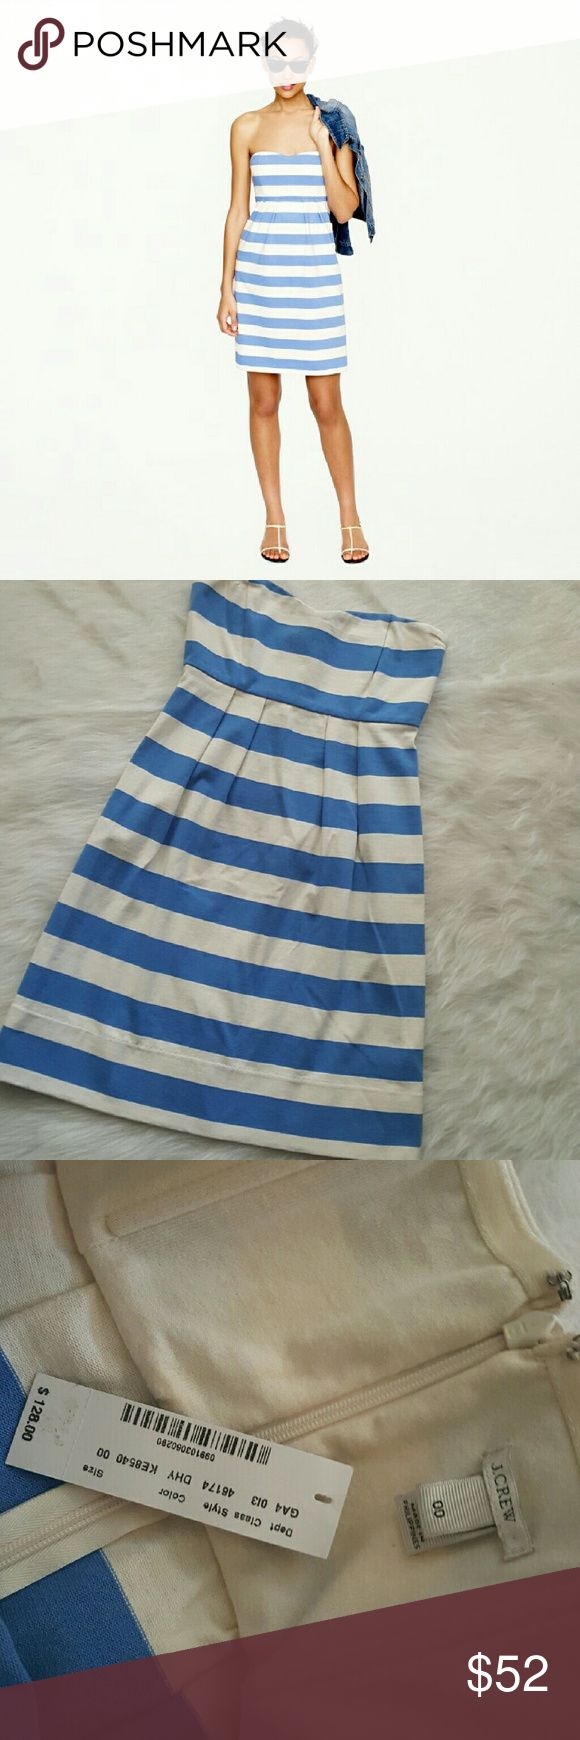 """NWT J. CREW STRIPE NAUTICAL  STRAPLESS DRESS Brand new with tags. The ultimate toss-in-your-suitcase outfit, this easy warm-weather dress is made from comfortable cotton with a classic nautical stripe and a simple strapless silhouette.  Straight silhouette. Falls 36 1/4"""" from shoulder. Back zip. Machine wash. Item 46174. Empire waist across 12"""". Chest across 14"""".  100% cotton. J. Crew Dresses Strapless"""